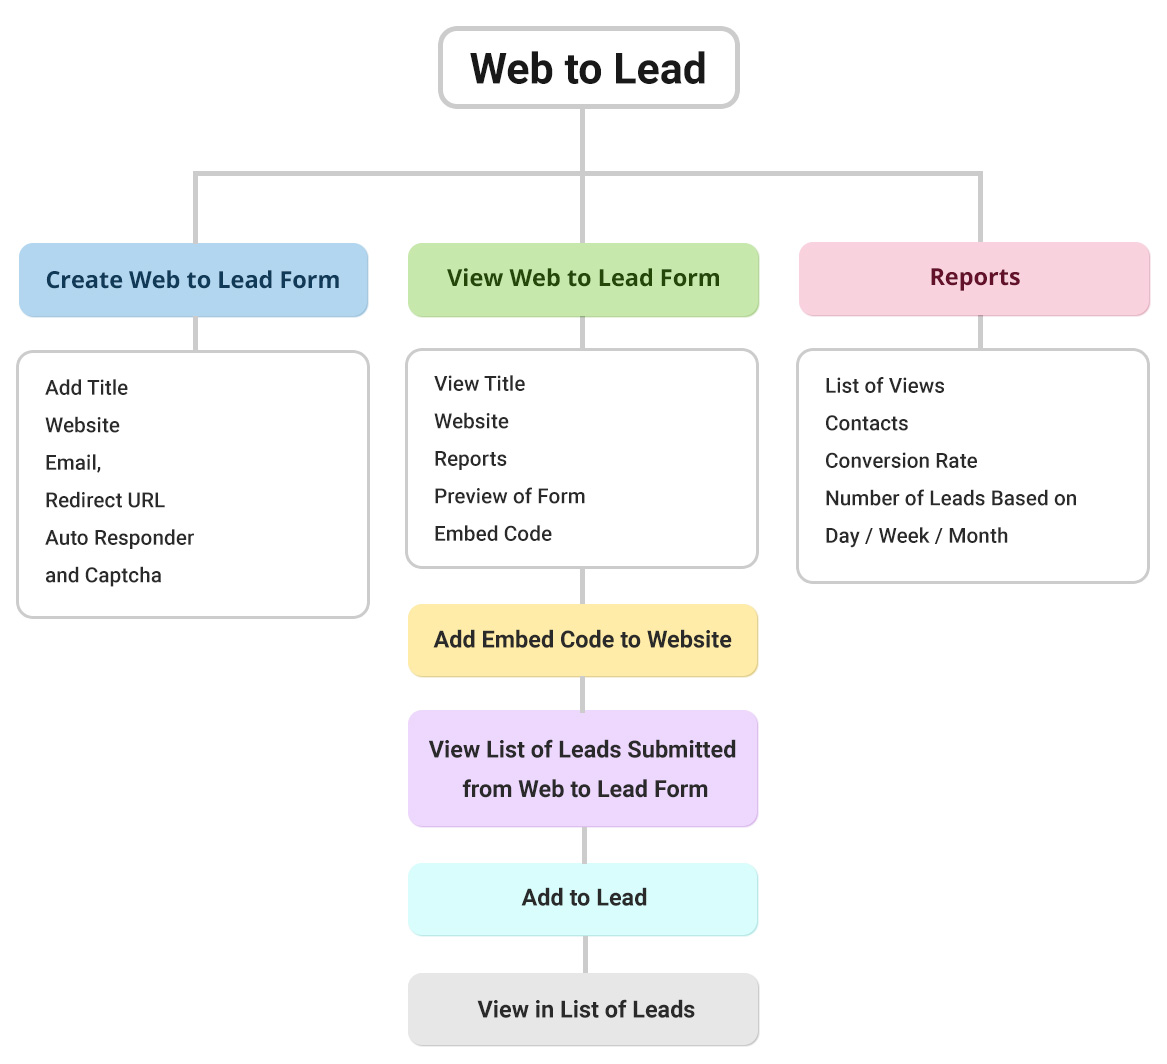 Web to Lead